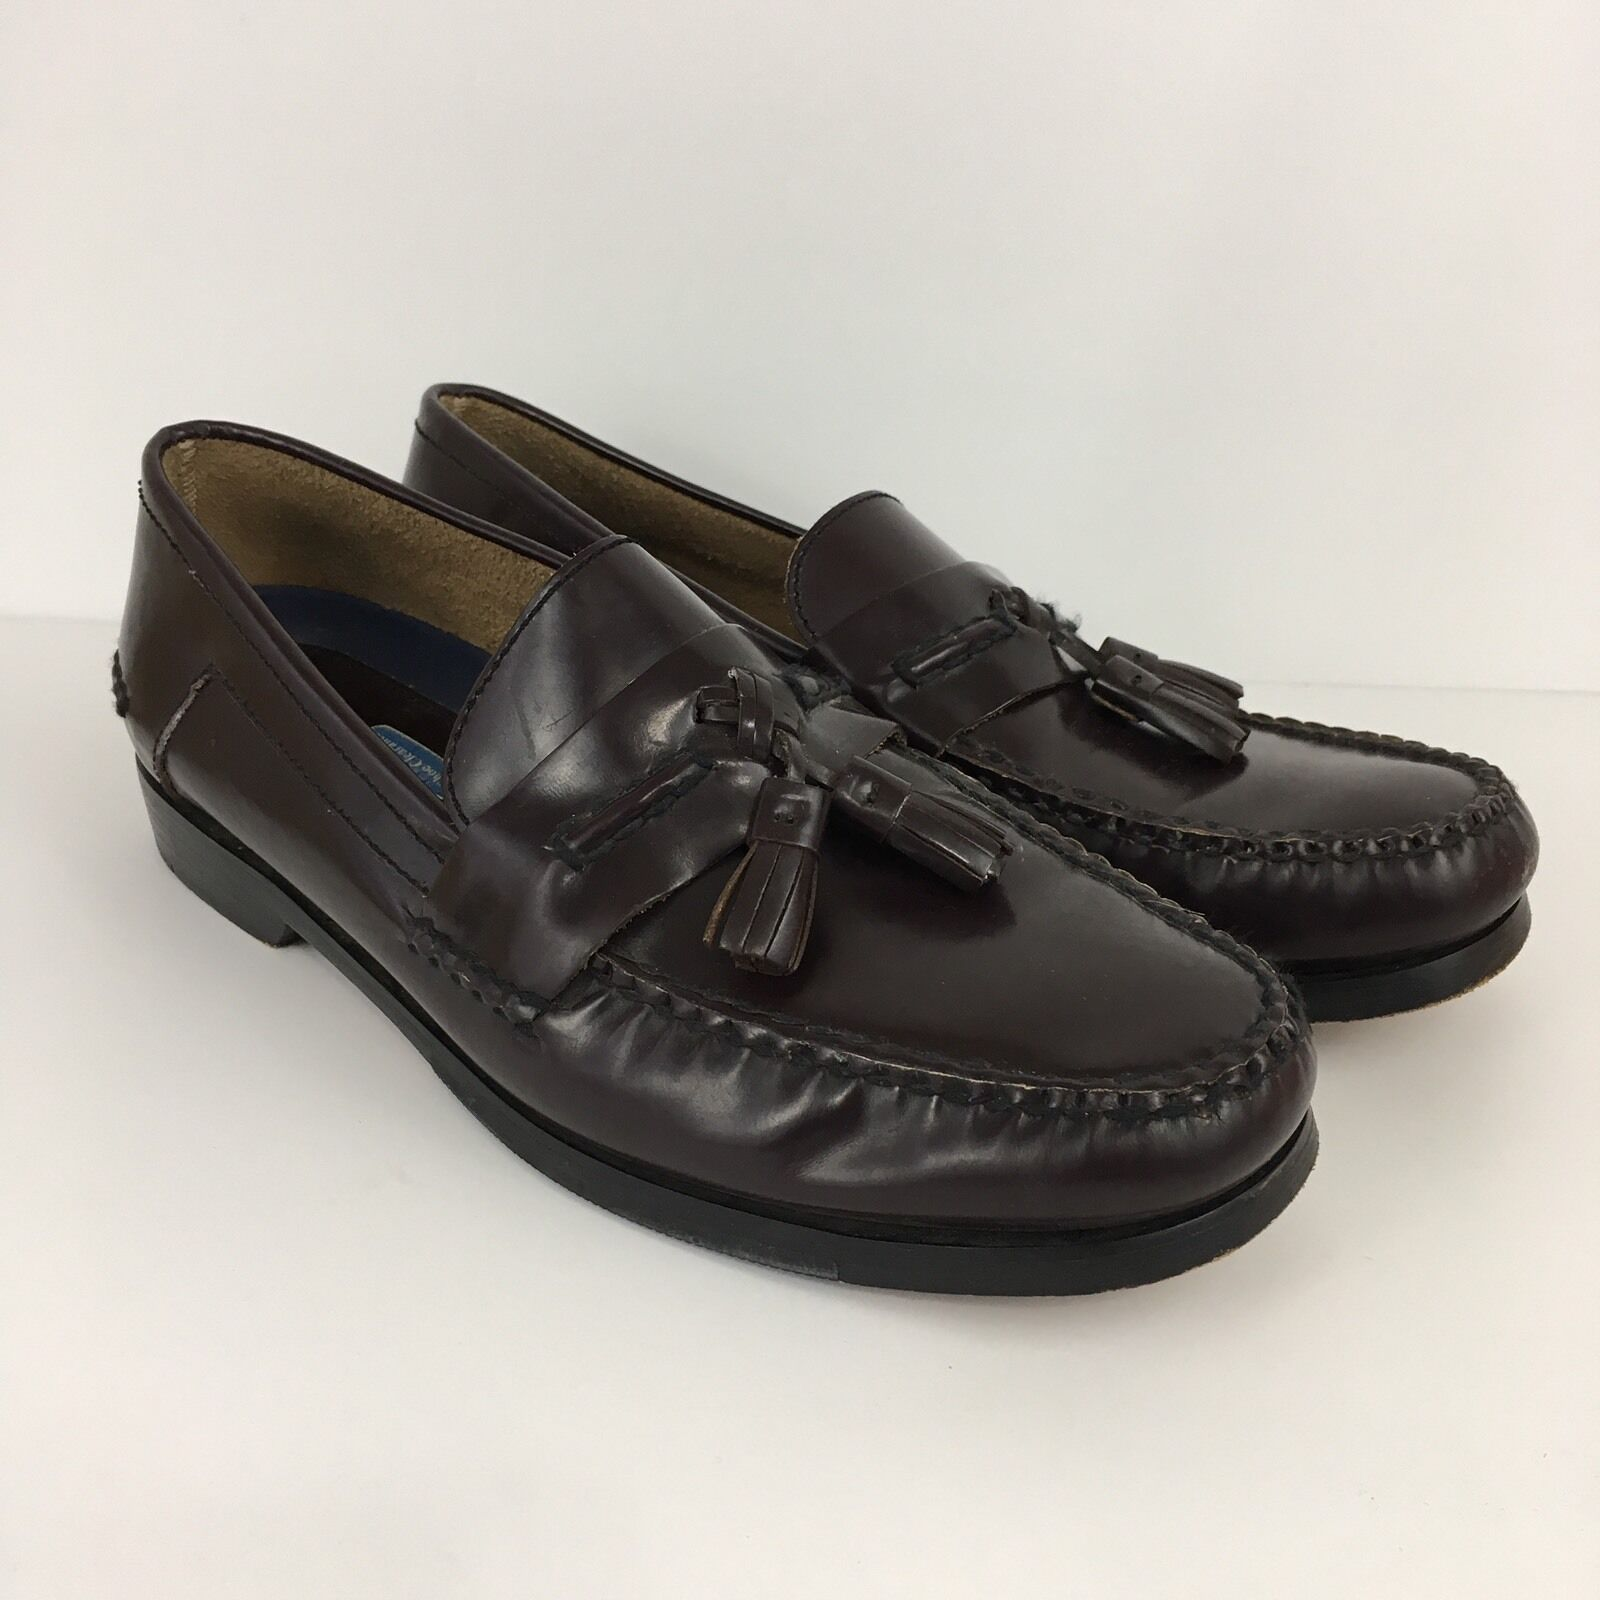 Bostonian Stadium Sz 10.5M Oxblood Flex Tassel Loafer With First Flex Oxblood Sole 3d5649